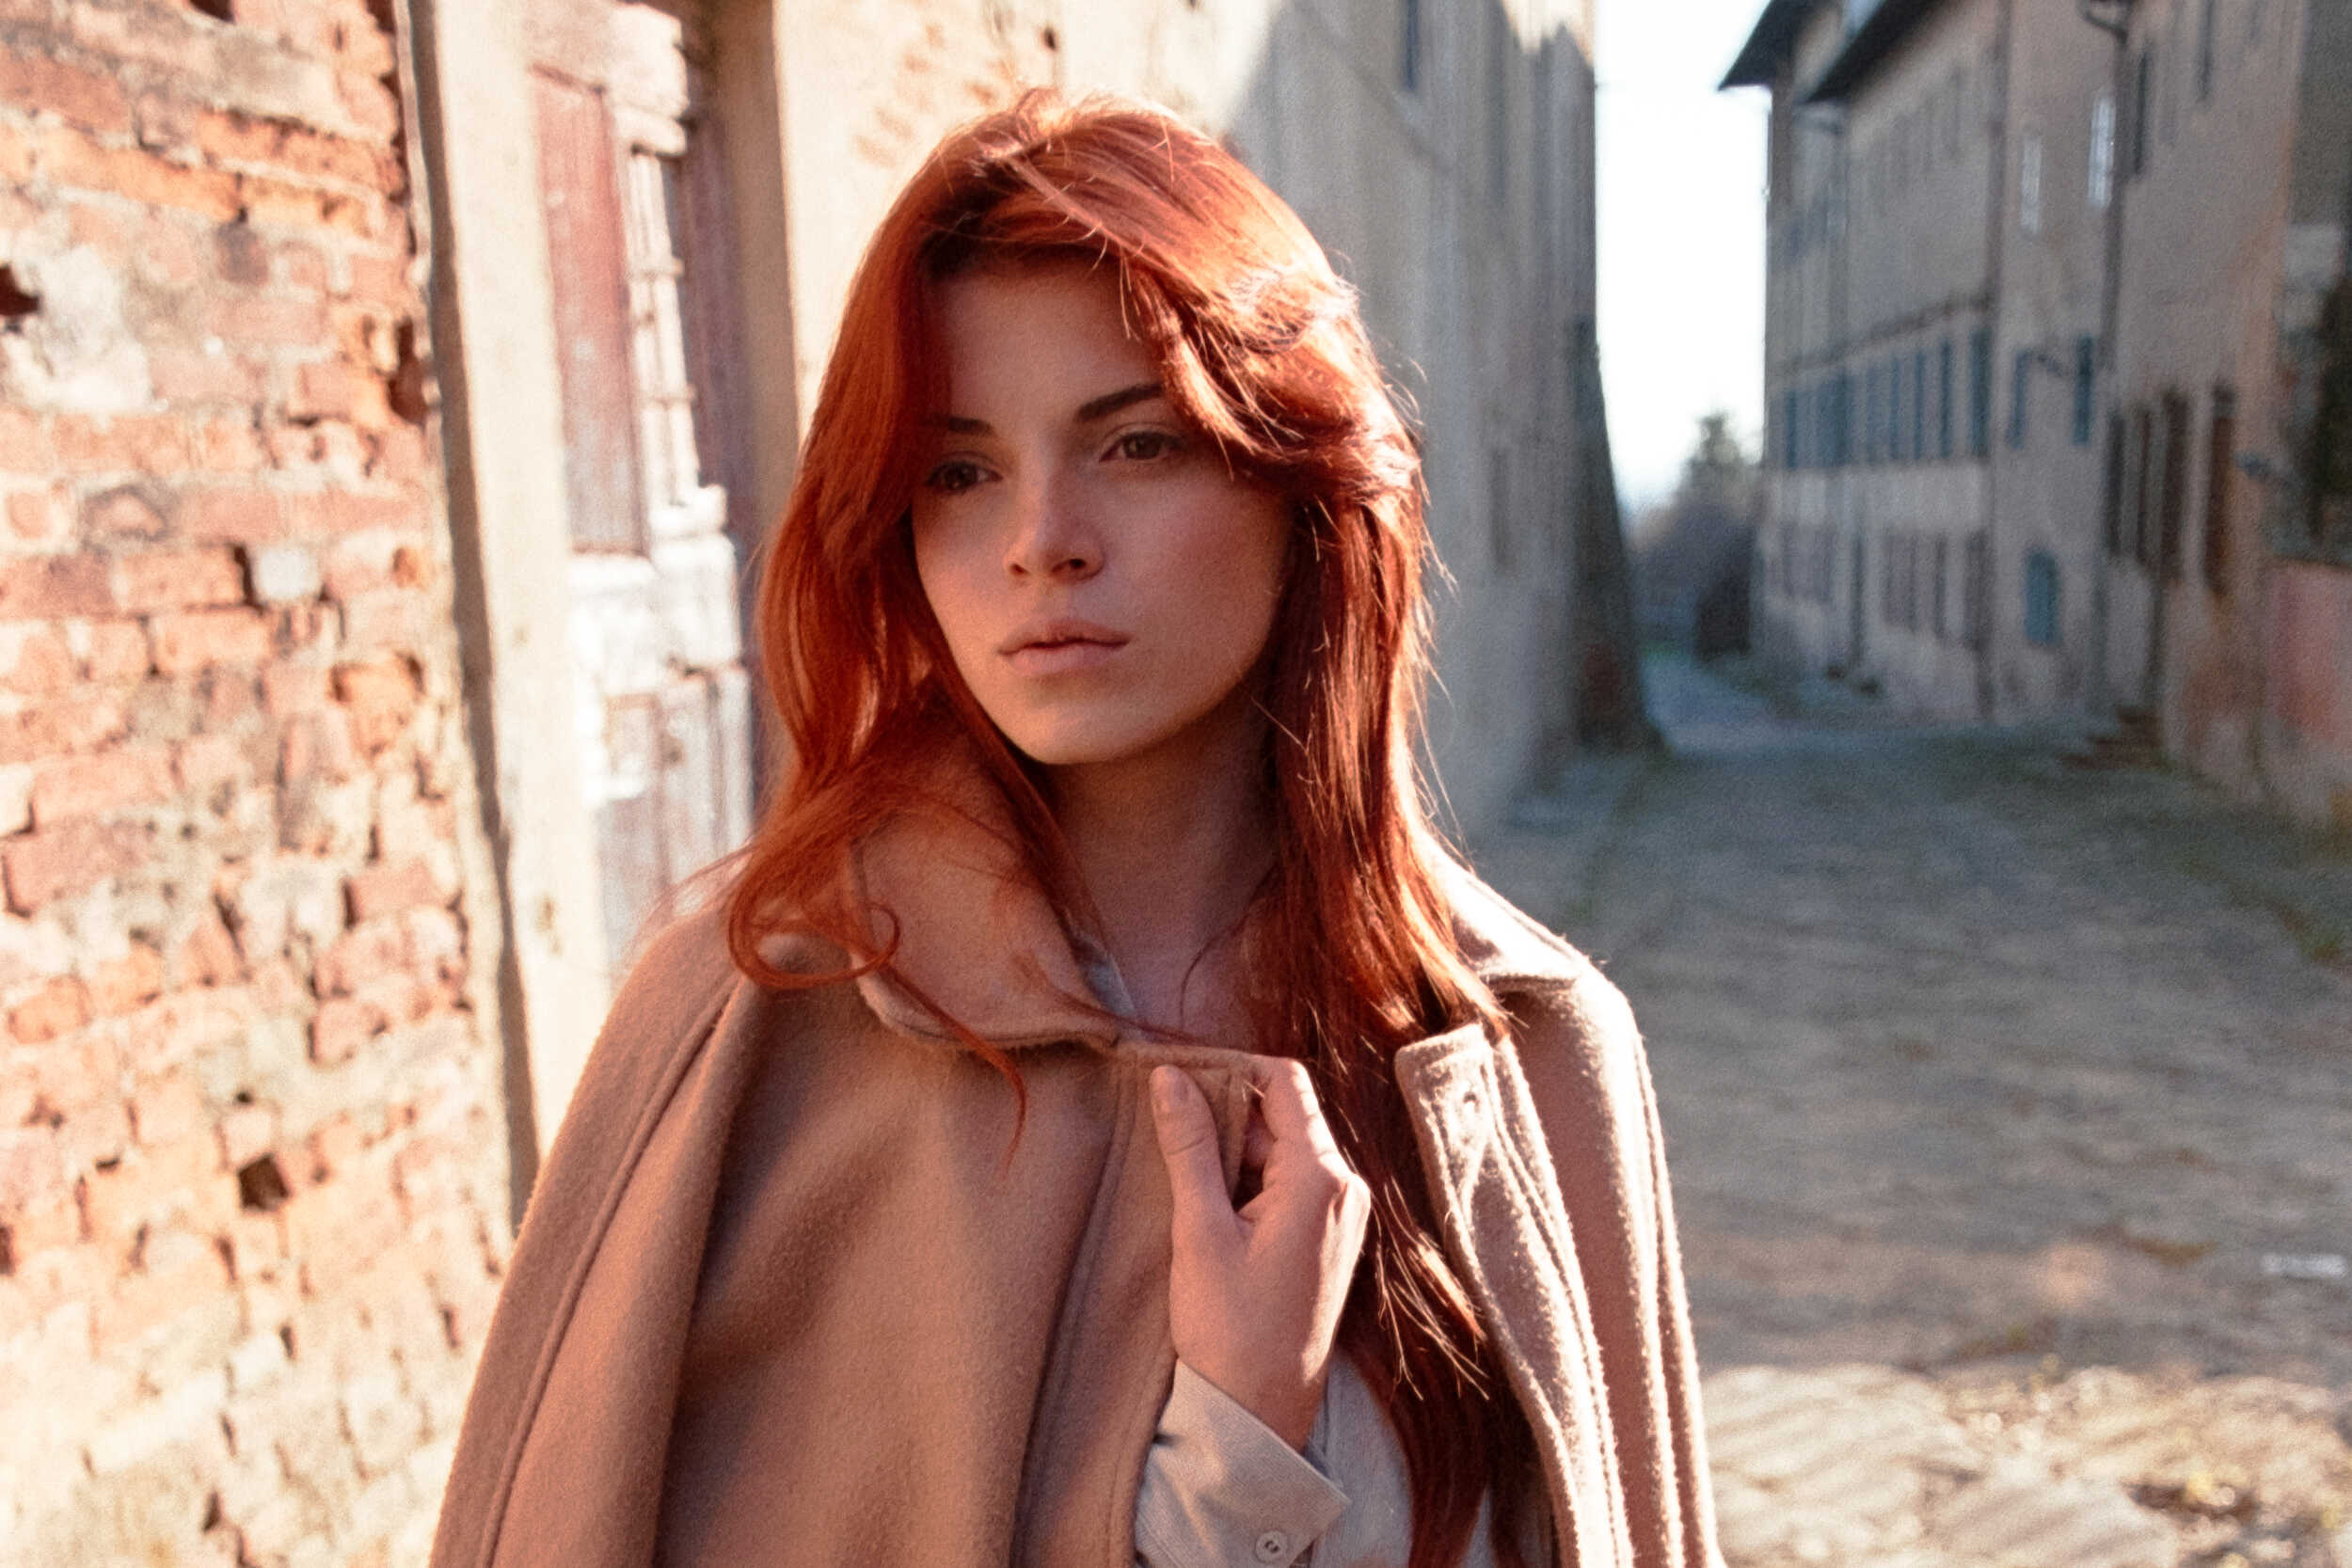 Analog Photography portrait session in Tuscany by Alessandro Michelazzi